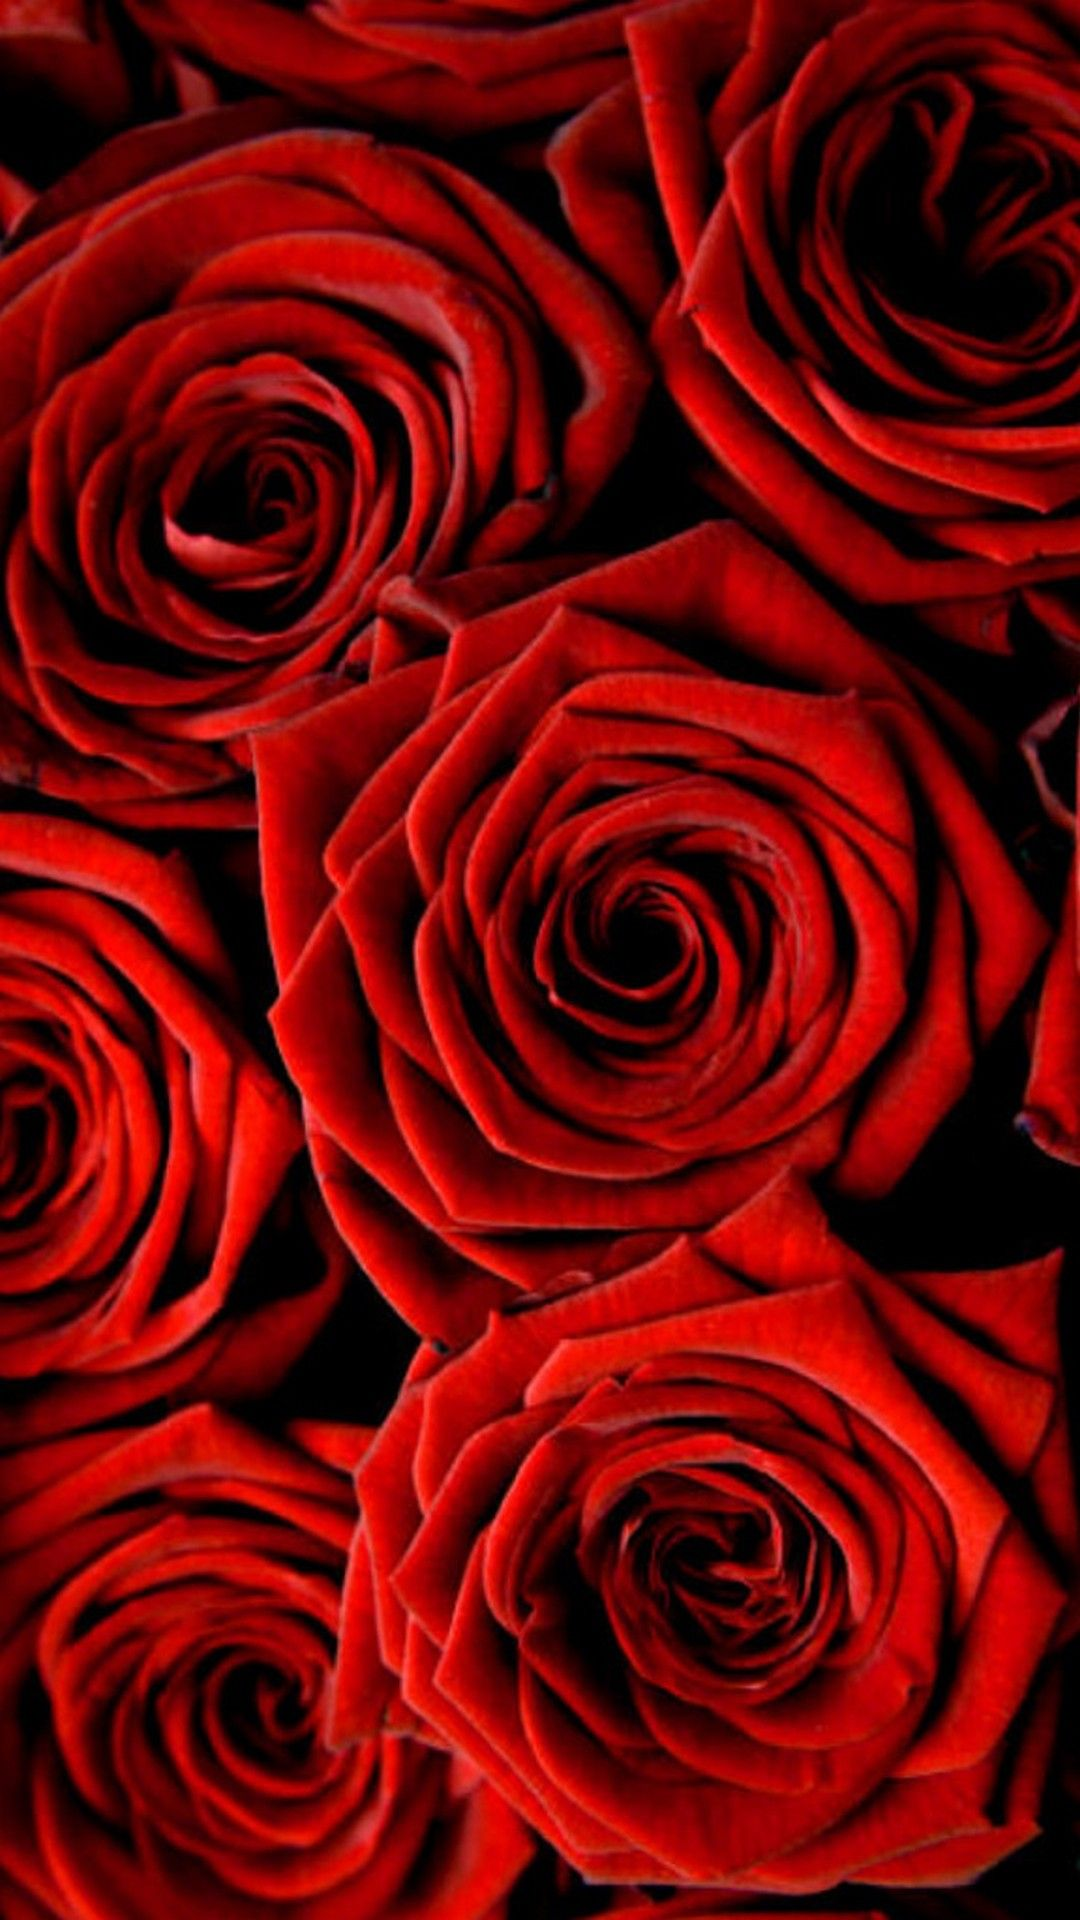 Red And Gold Photo In 2020 Rose Wallpaper Flower Phone Wallpaper Red Roses Wallpaper